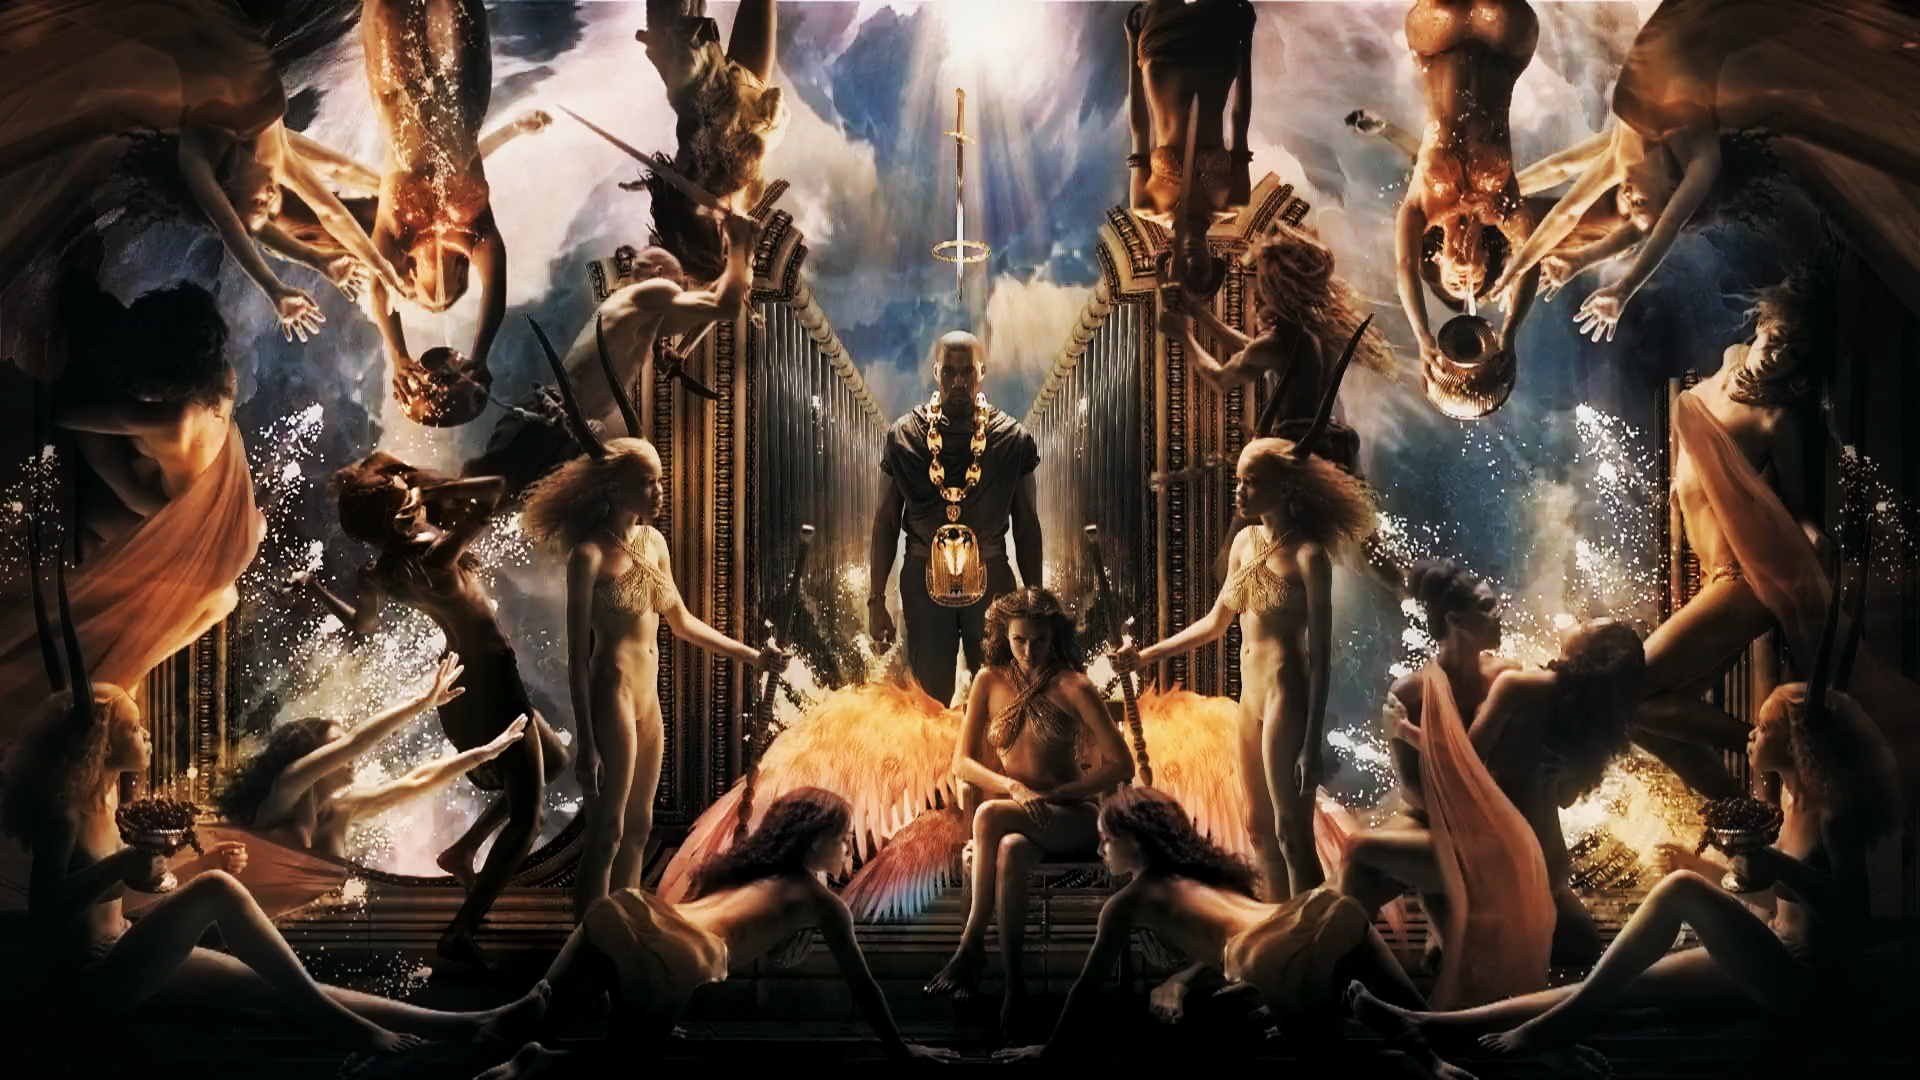 Kanye West POWER by Gody00 1920x1080